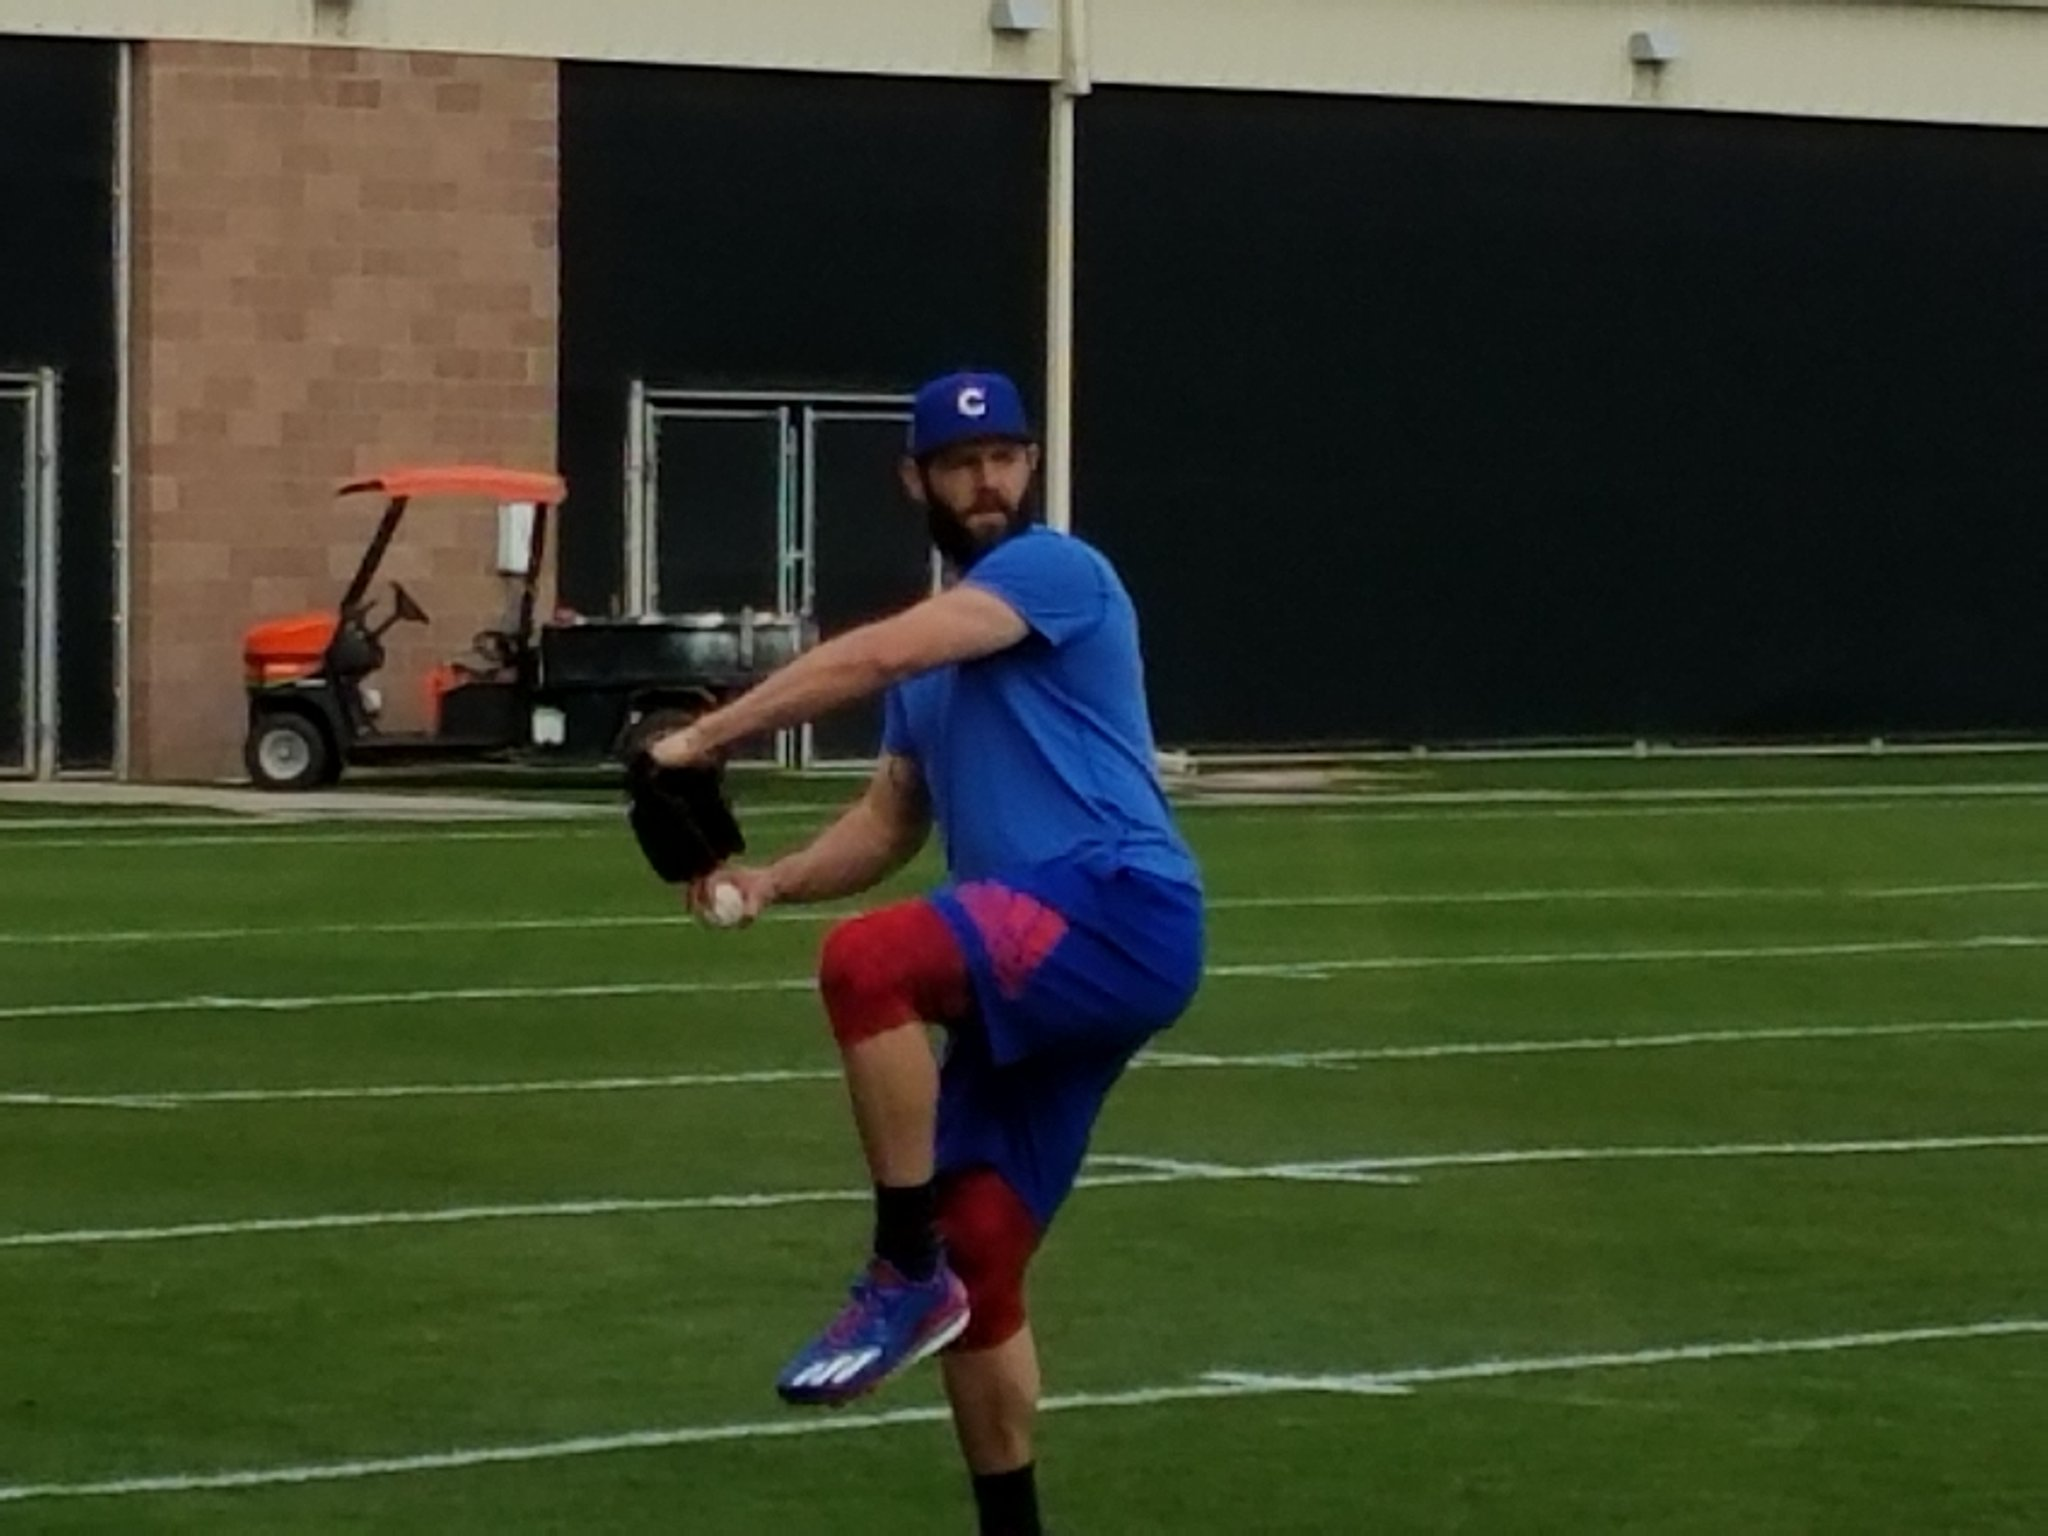 Welcome back, #Cubs. Arrieta warms up https://t.co/KiWUaAxbOo